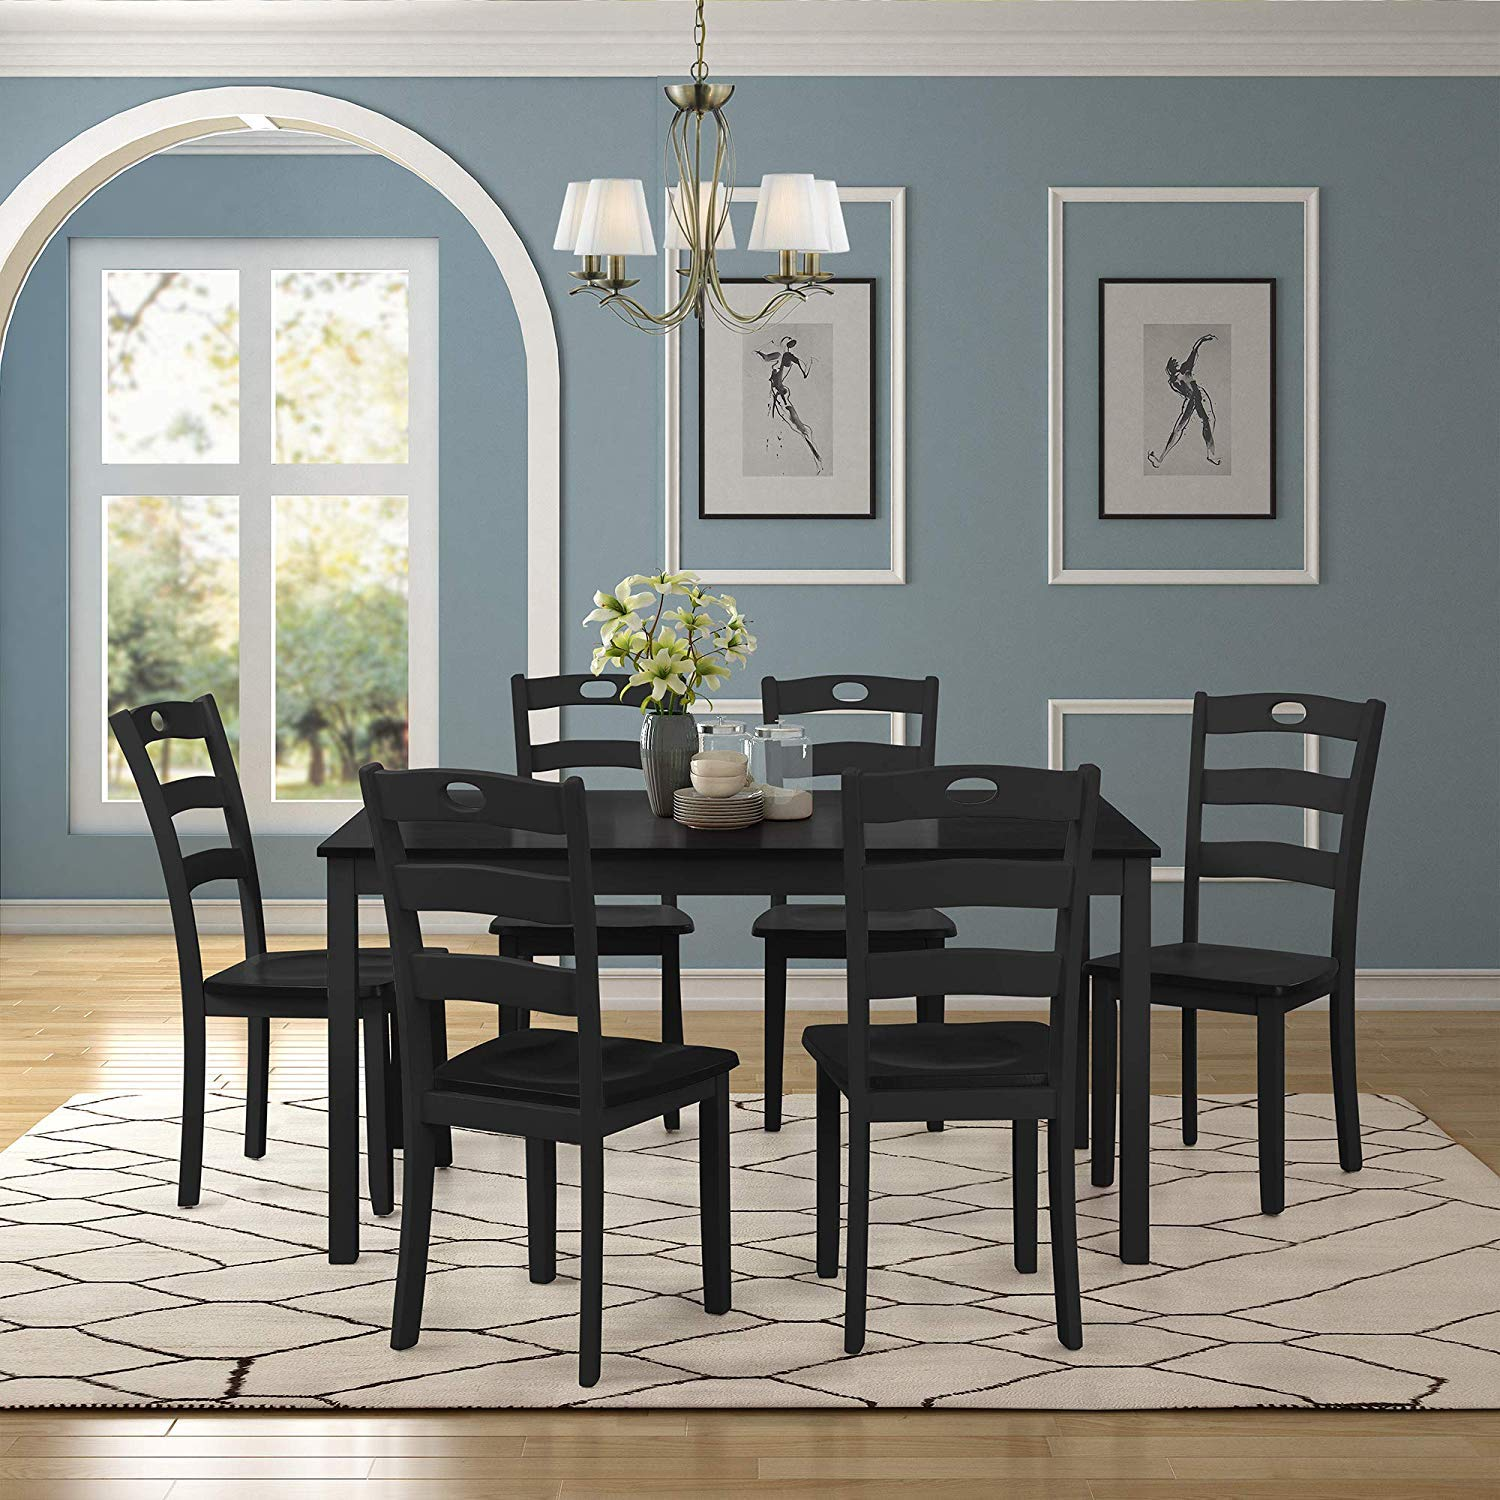 Merax Dining Table Set for 6 Black Kitchen Table Sets Wood Dining Table with 6 Chairs and Exquisite Dining Room Furniture